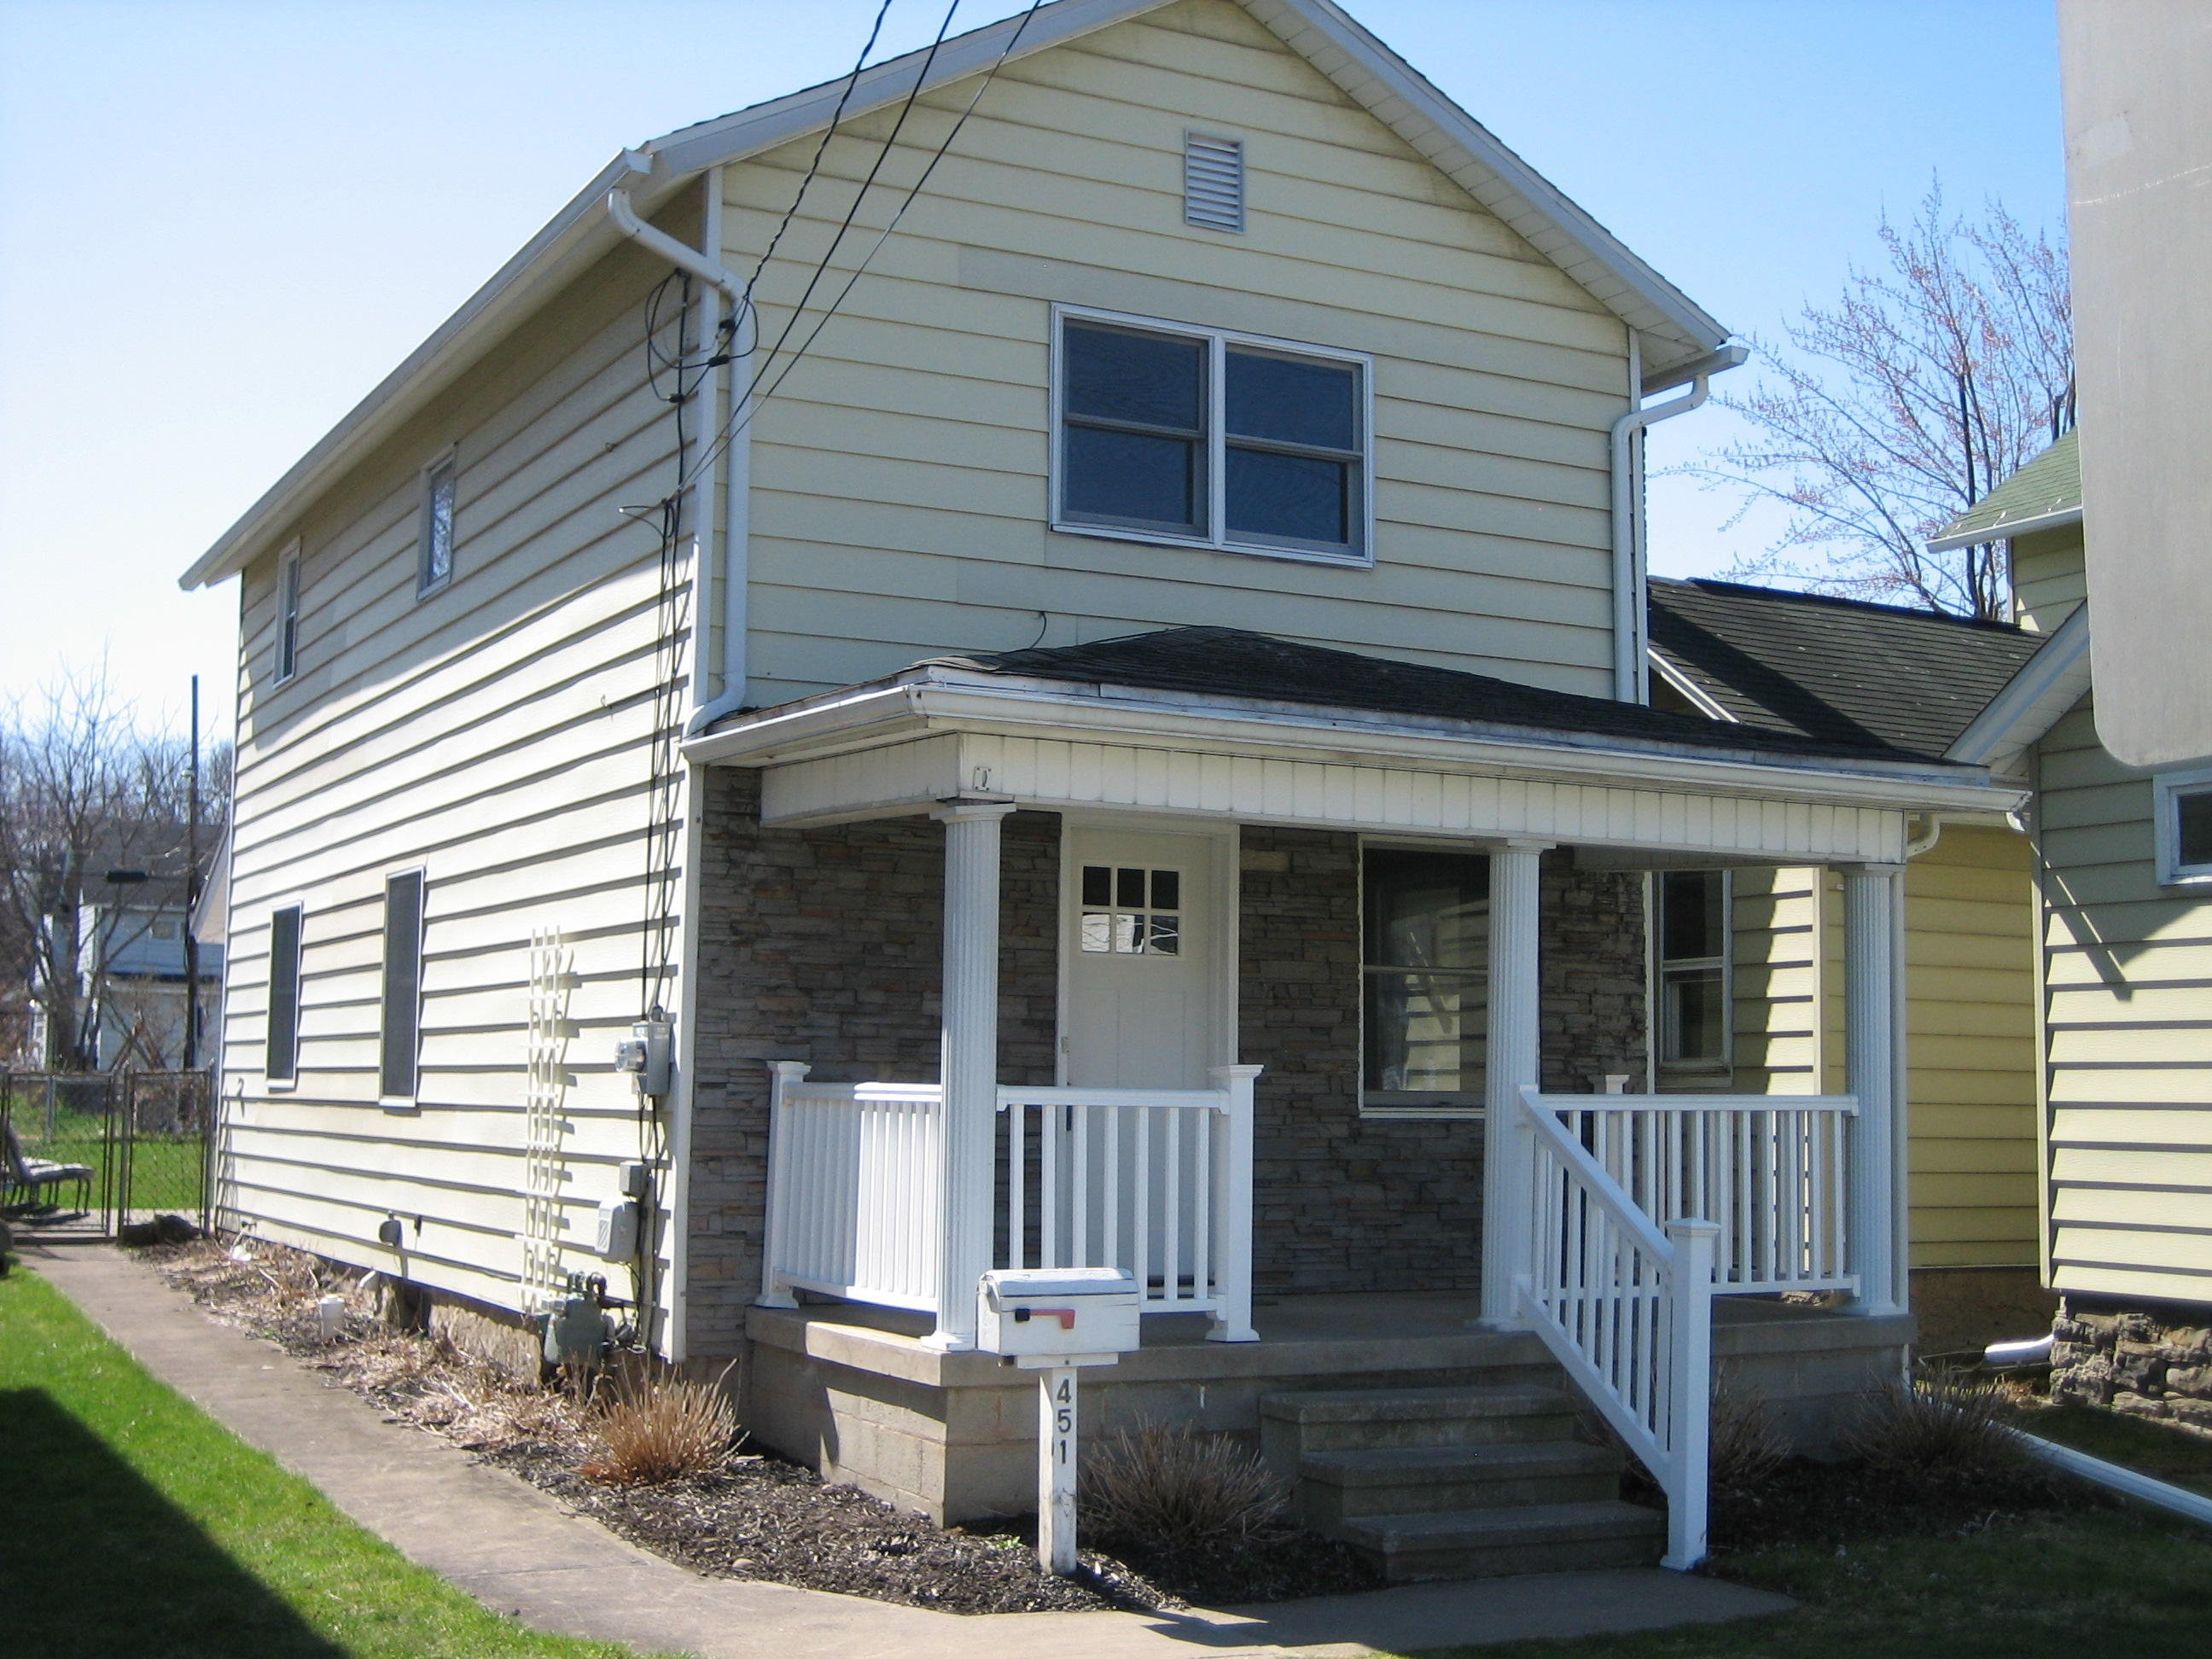 451 Hickory St, Peckville, Pennsylvania 18452, 3 Bedrooms Bedrooms, 6 Rooms Rooms,1 BathroomBathrooms,Single Family,For Sale,Hickory,21-1185